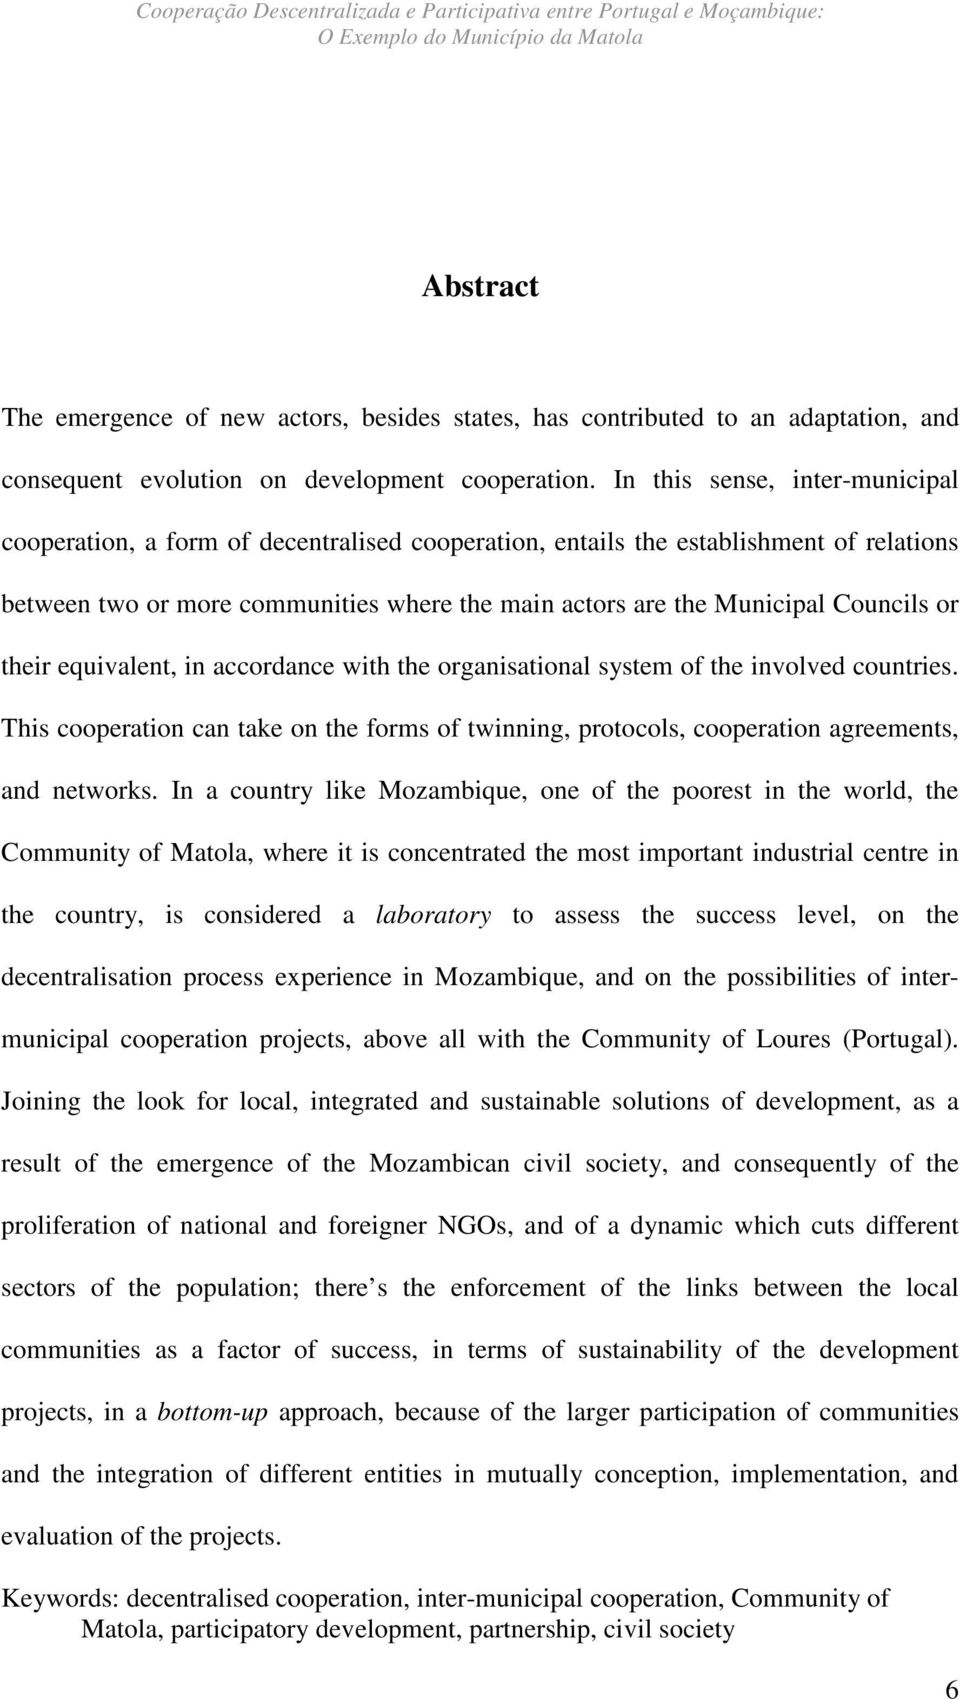 In this sense, inter-municipal cooperation, a form of decentralised cooperation, entails the establishment of relations between two or more communities where the main actors are the Municipal